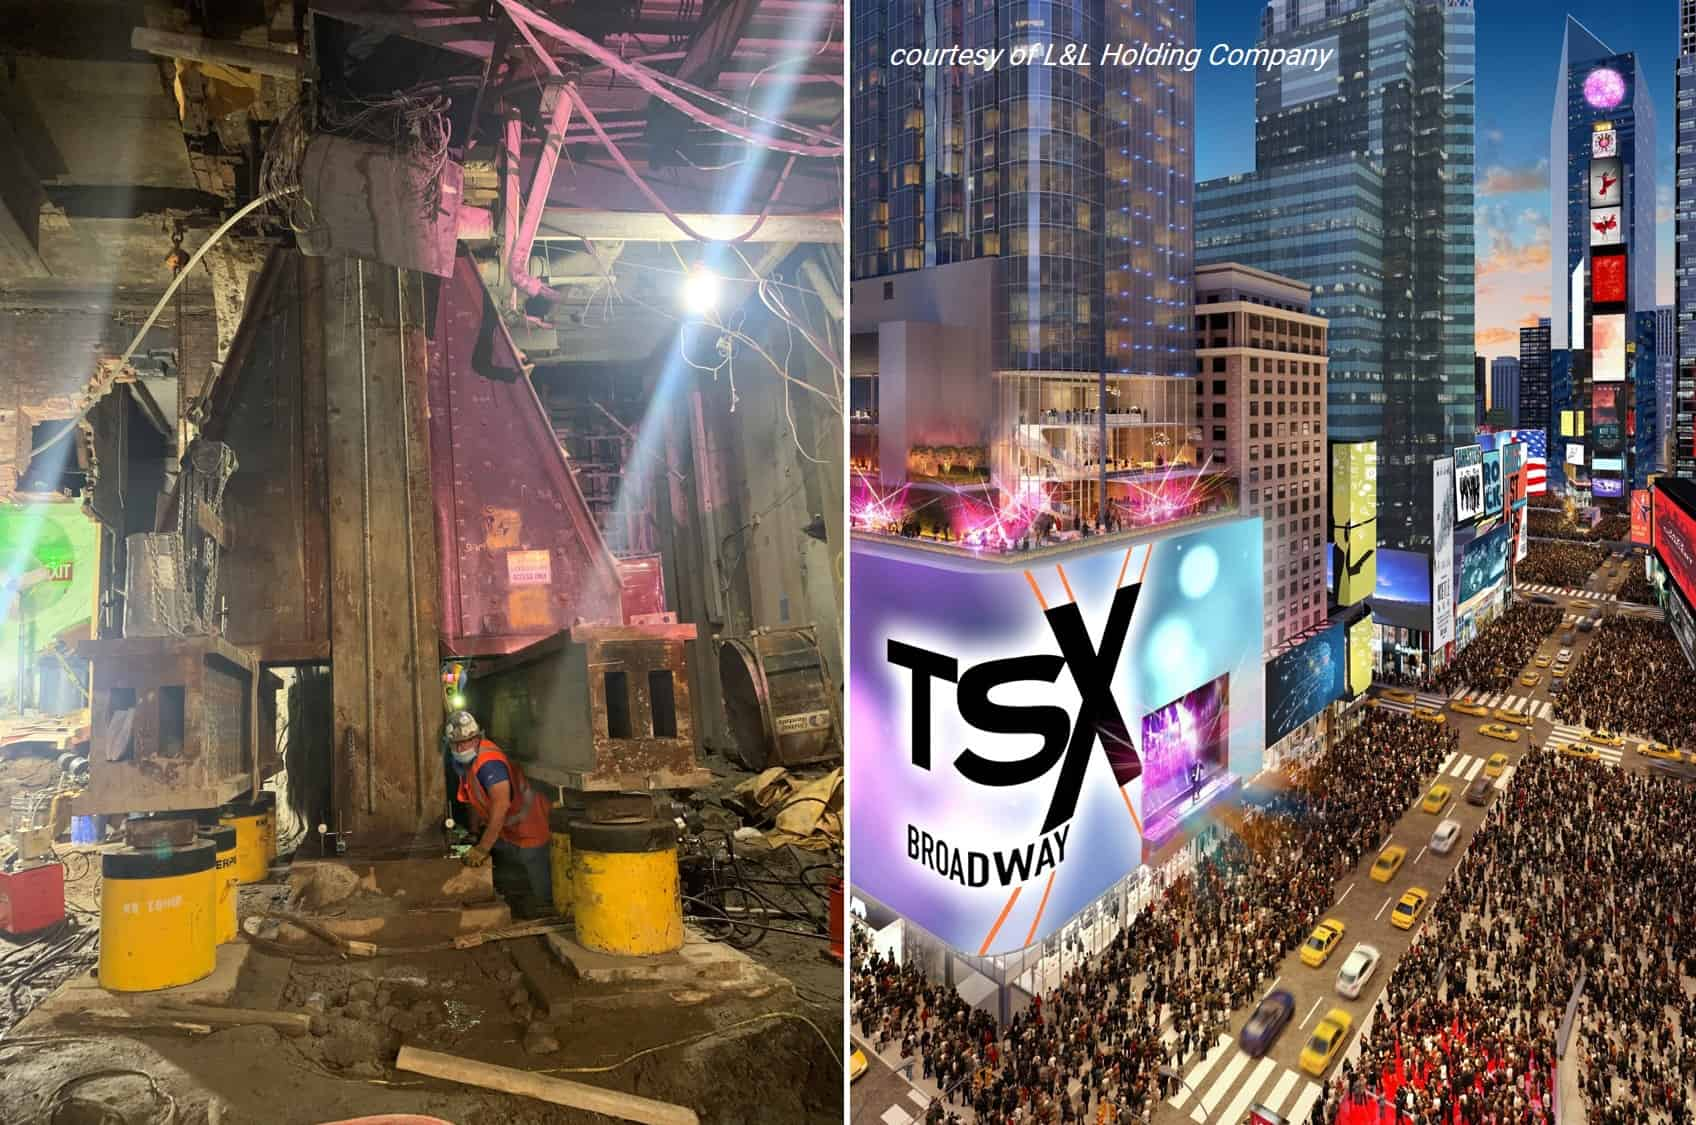 Jacking Super Columns at TSX Broadway